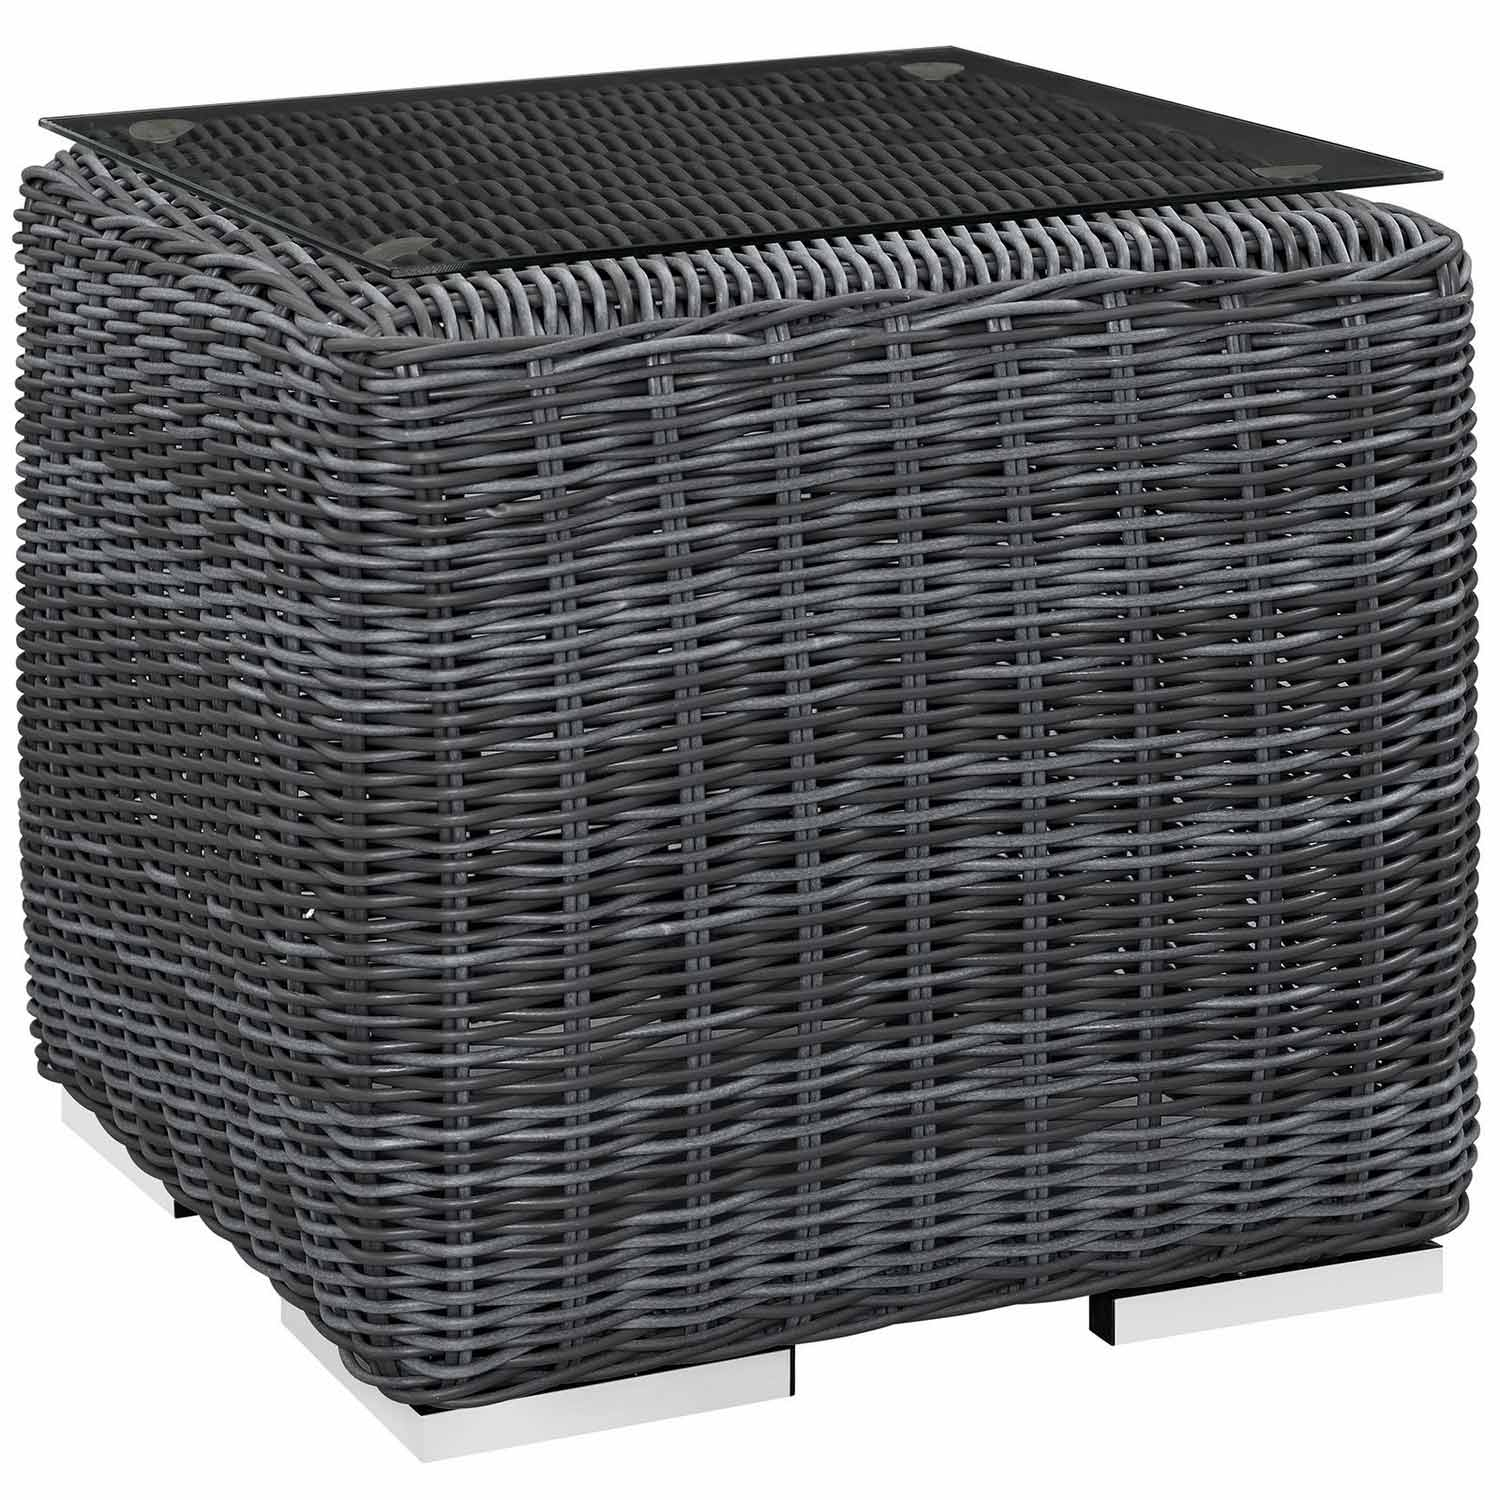 Modway Summon Outdoor Patio Side Table - Gray